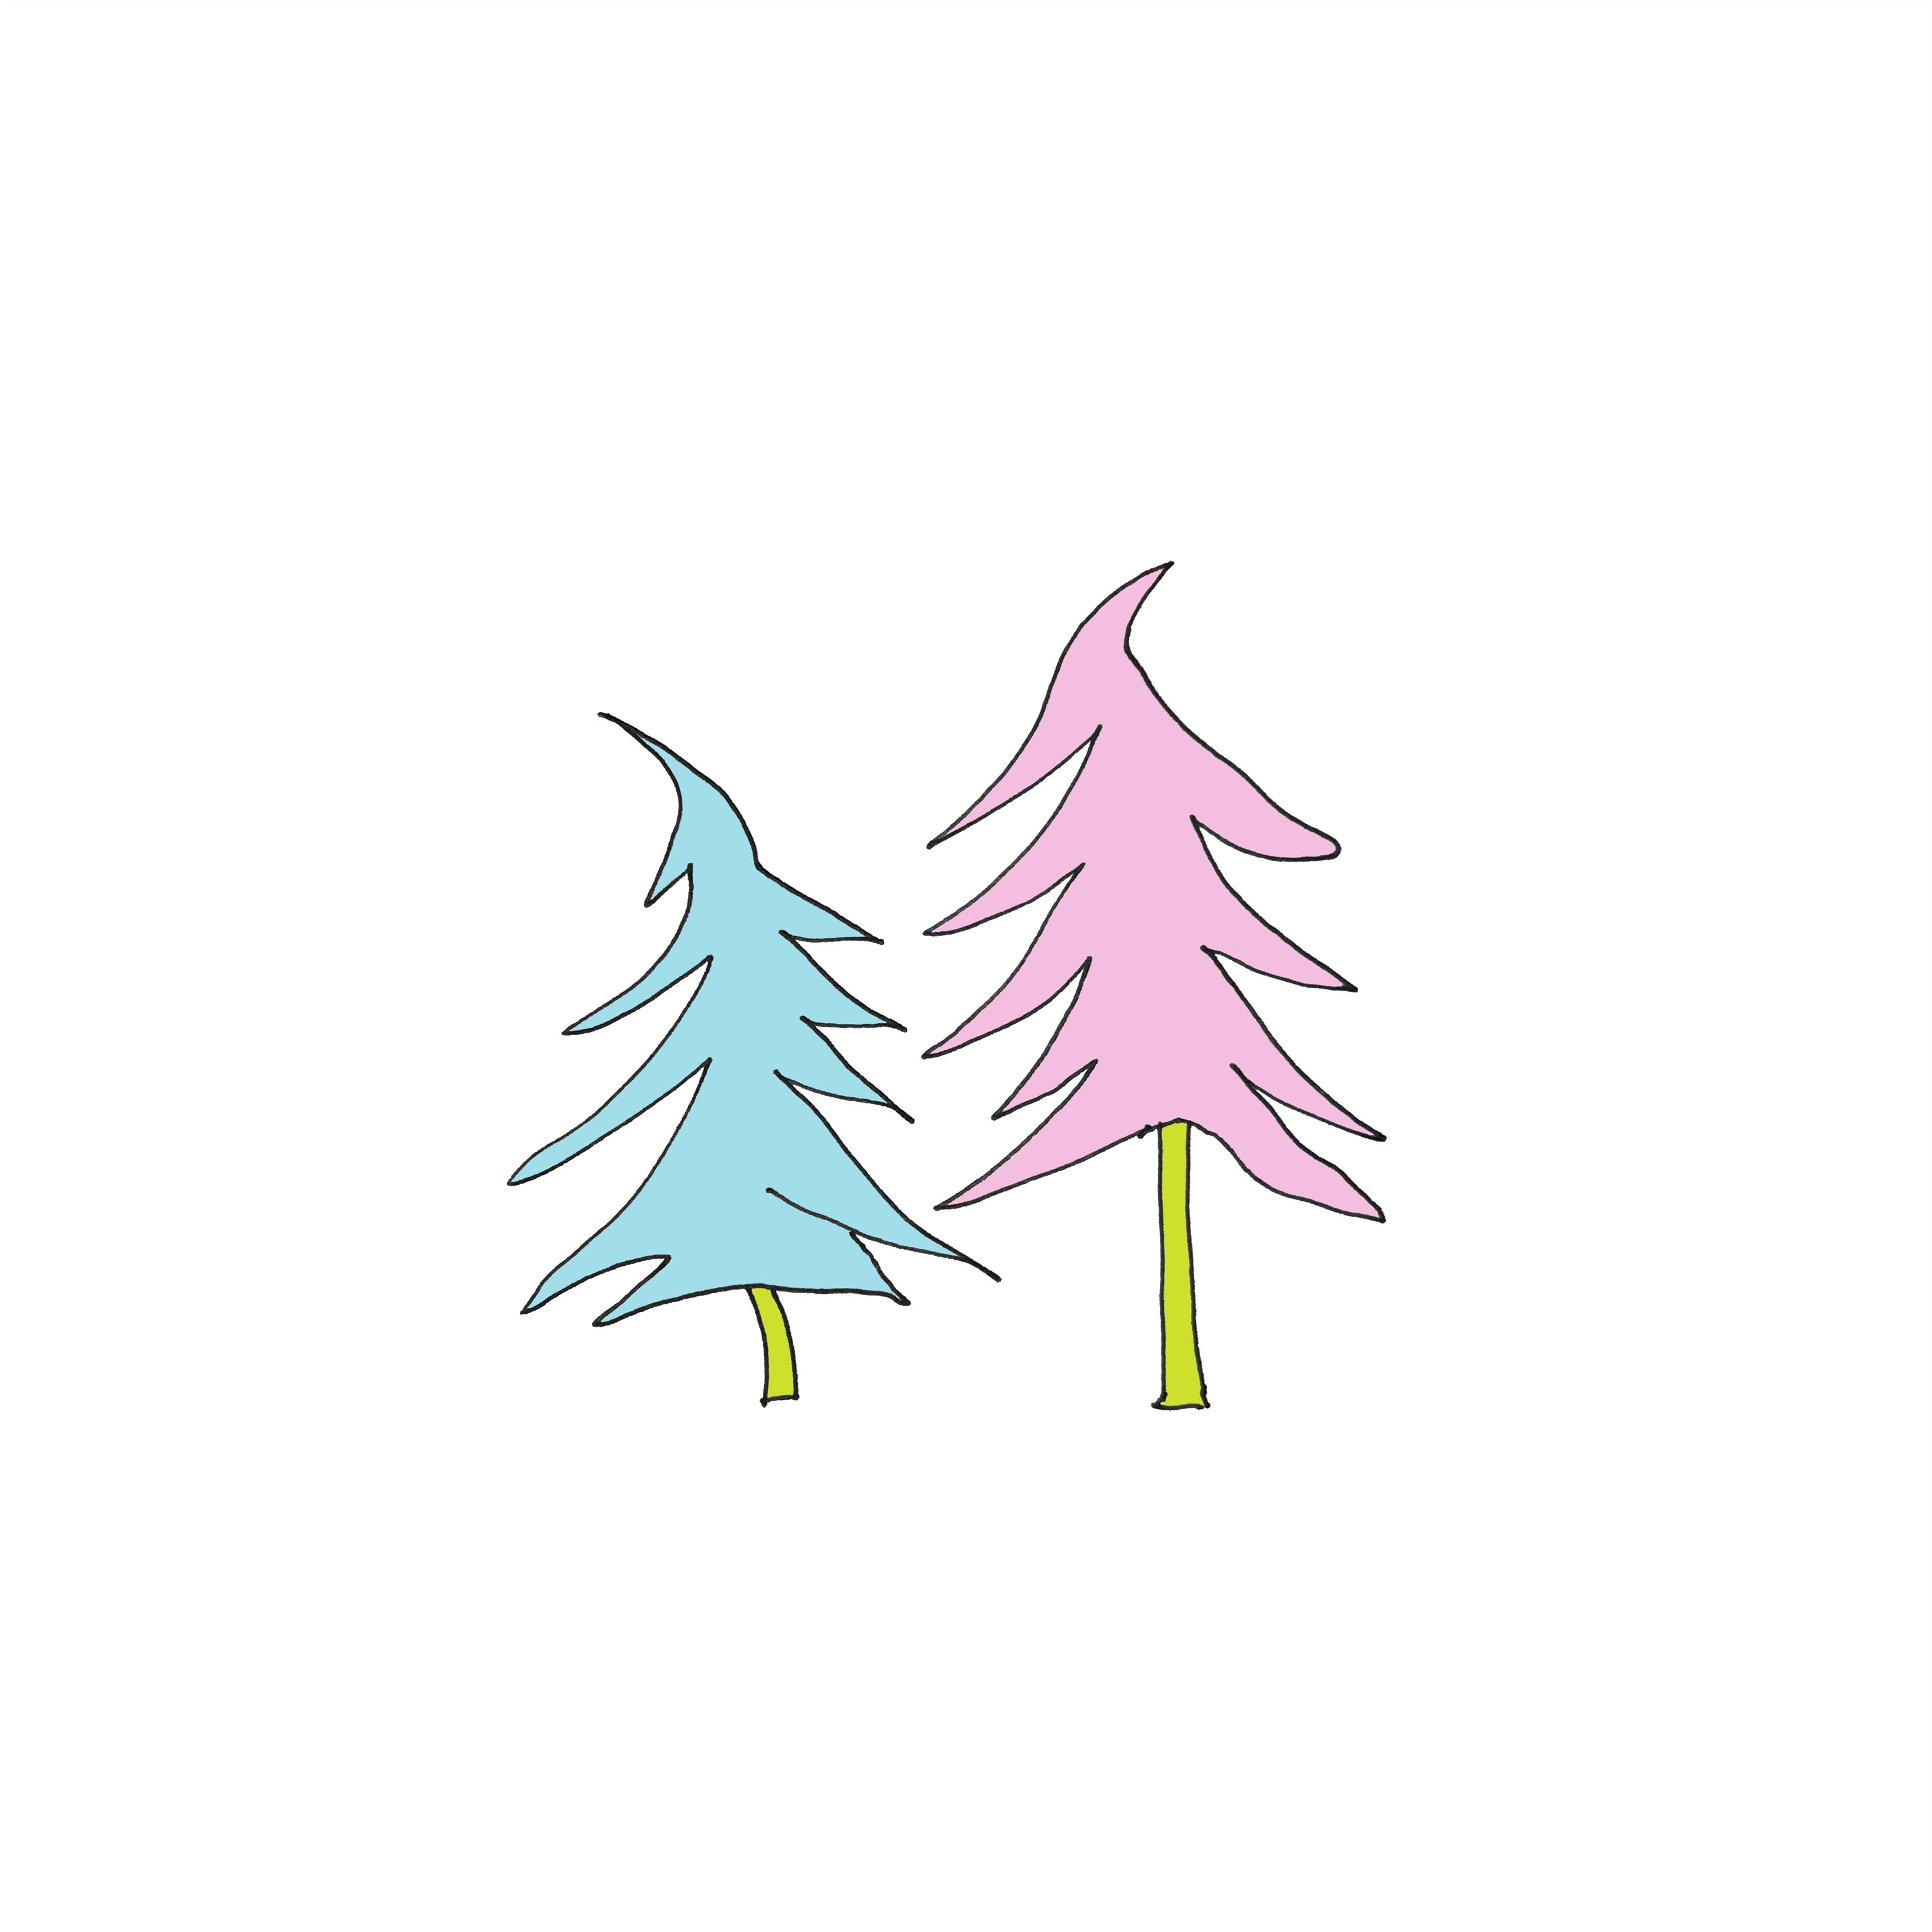 art every day number 196 two trees on snow illustration pink blue green